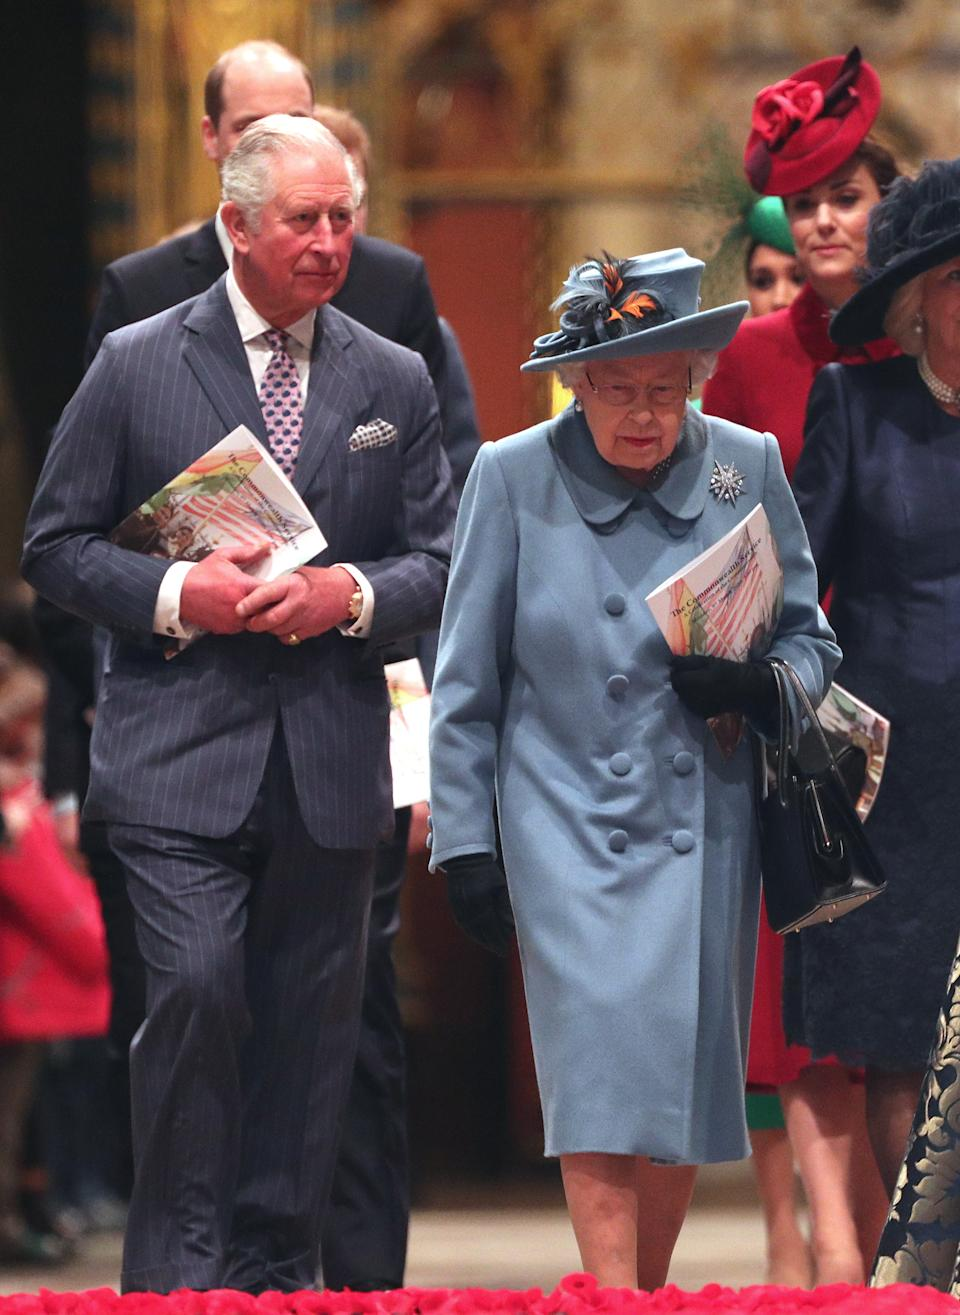 Queen Elizabeth II and the Prince of Wales leaving after the Commonwealth Service at Westminster Abbey, London on Commonwealth Day. The service is the Duke and Duchess of Sussex's final official engagement before they quit royal life. (Photo by Yui Mok/PA Images via Getty Images)